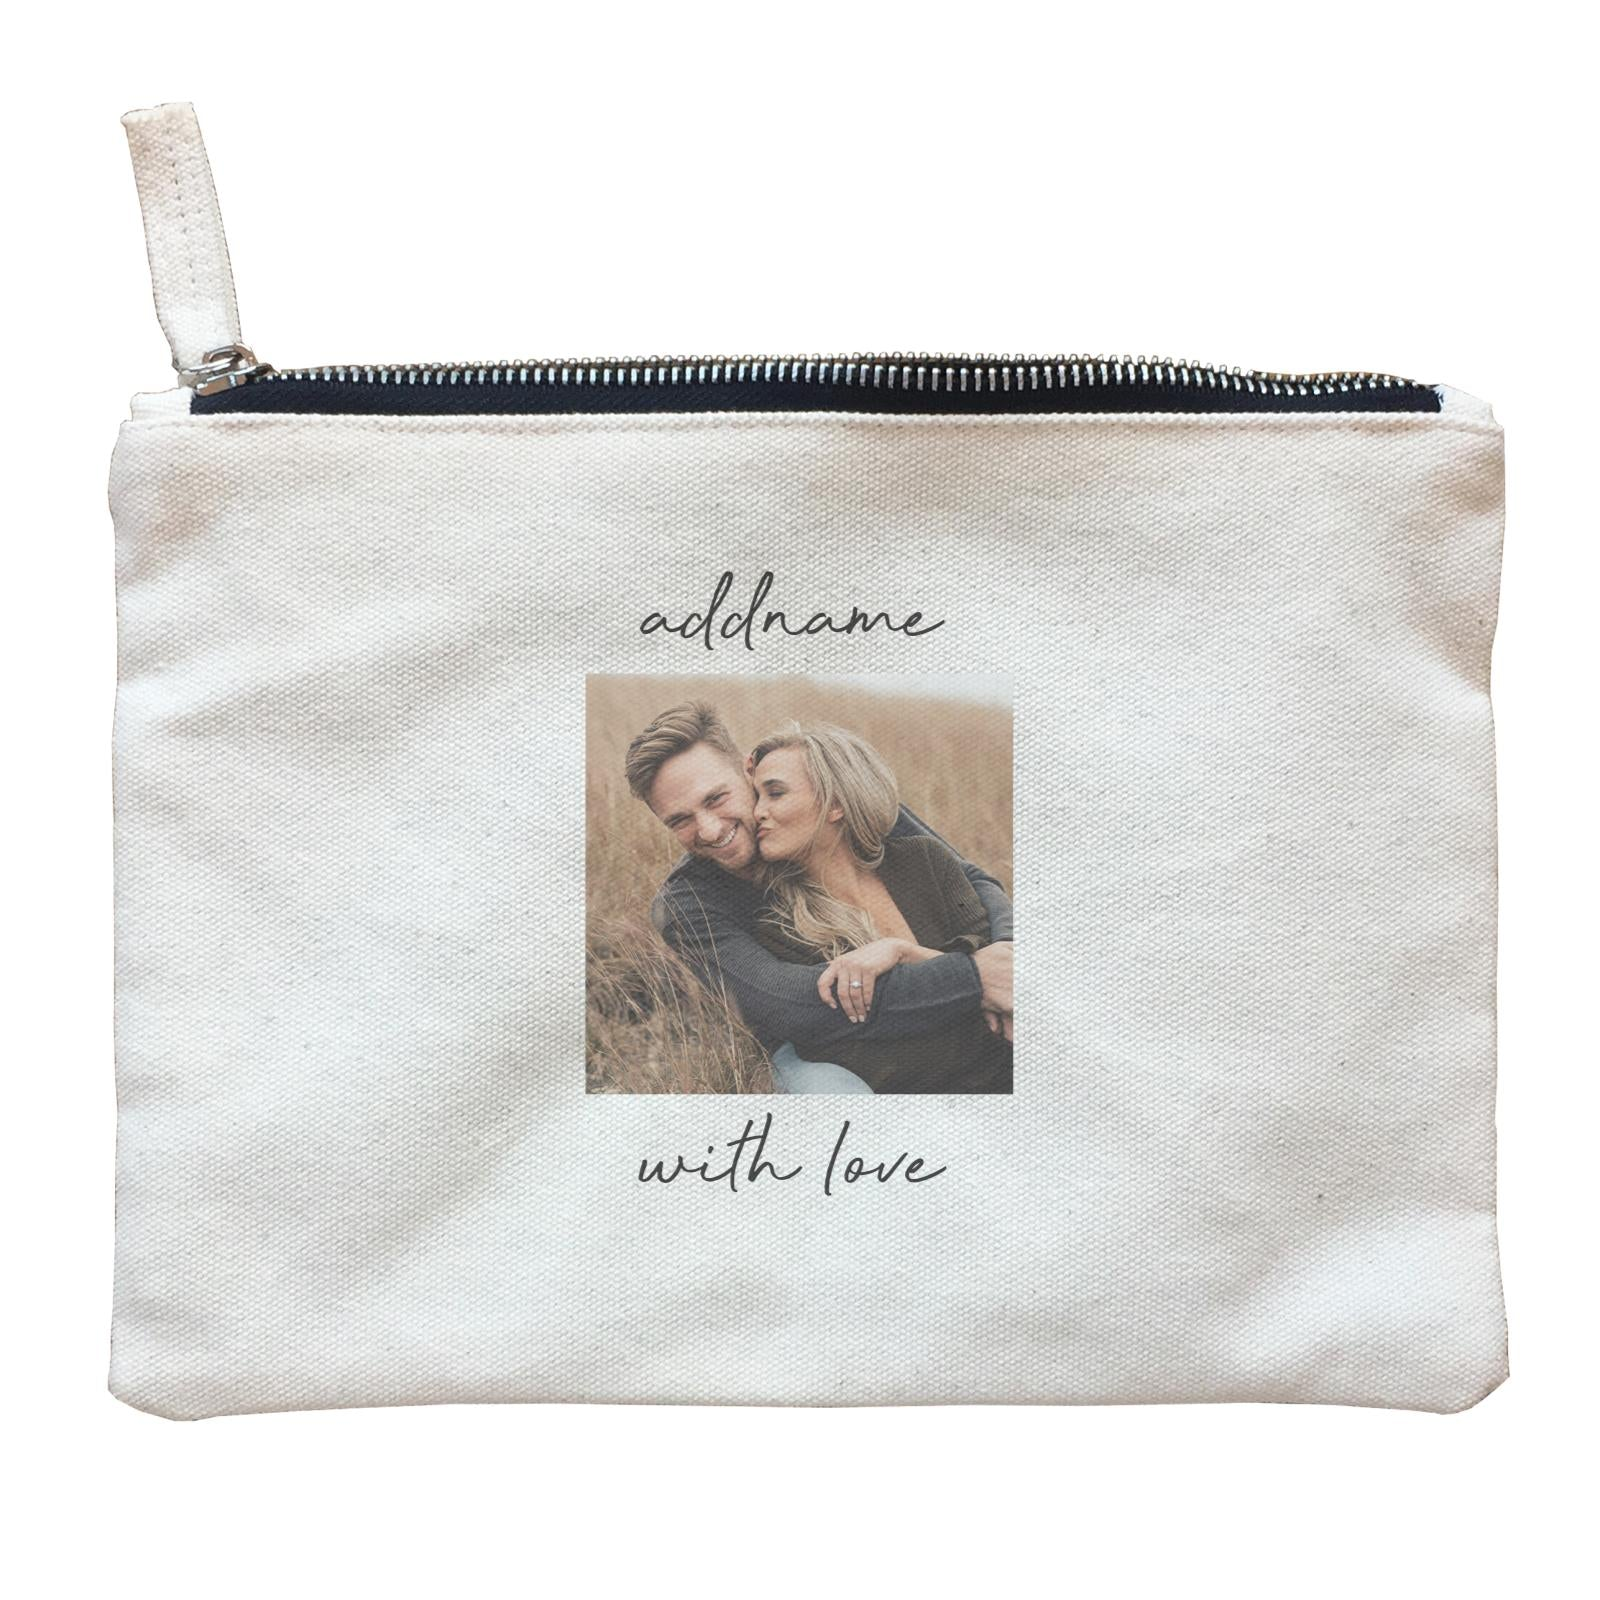 Photo Gift Series Simple Square Frame Zipper Pouch